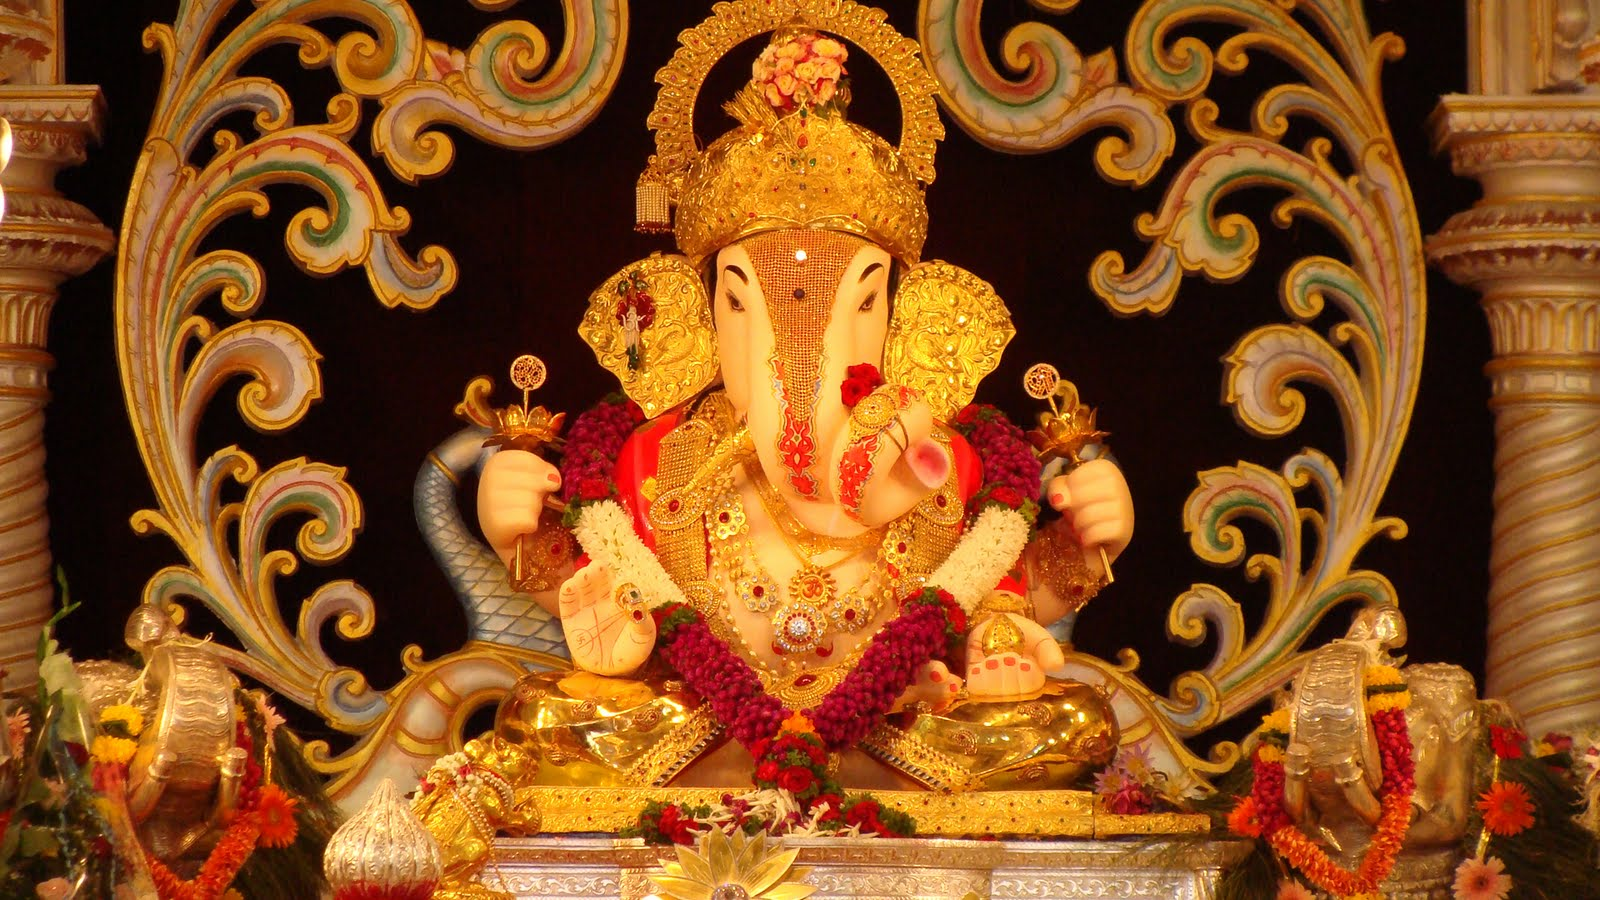 Hd wallpaper ganpati - 9 Best Unseen Hd Wallpapers Free Download Lord Of Ganesha 2017